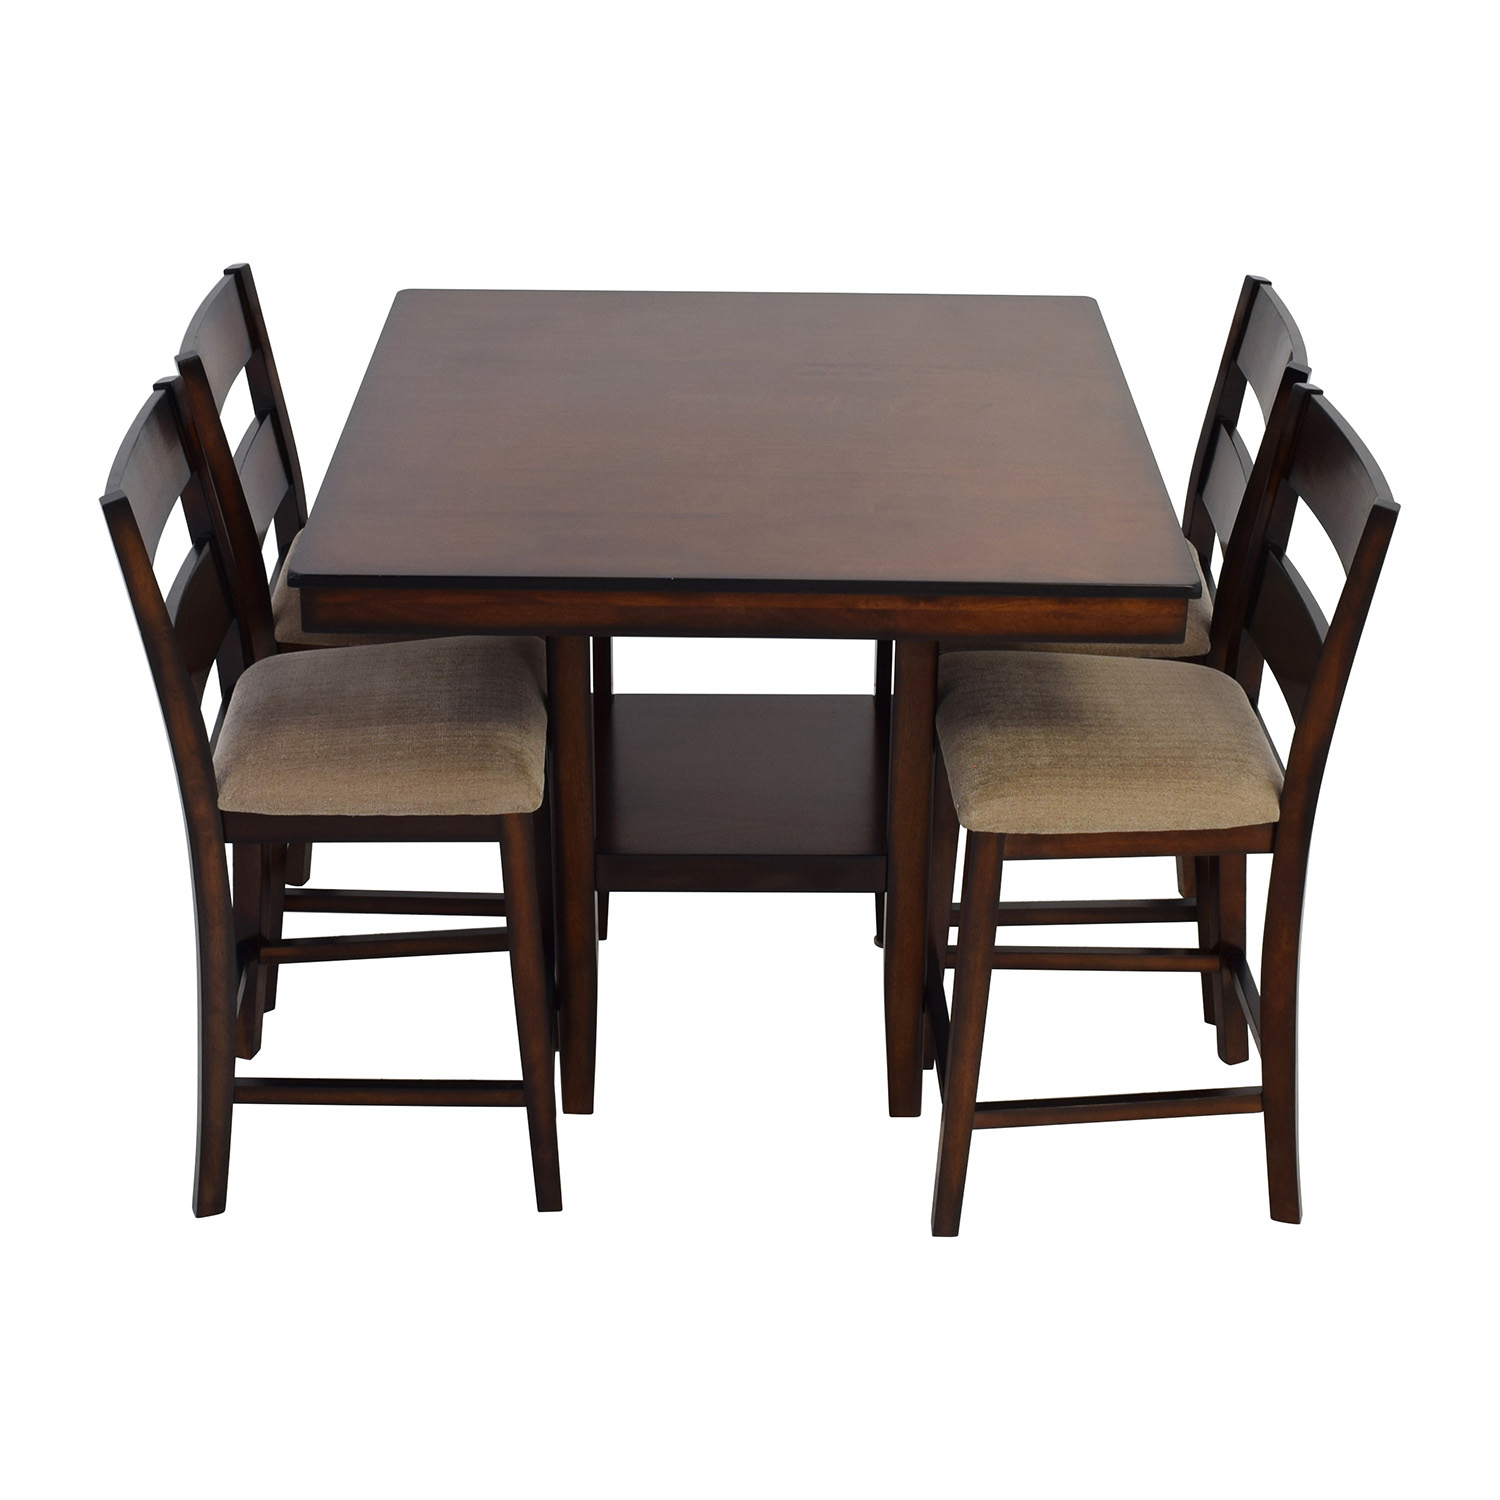 Macy's Macy's Branton Counter Height Table with Chairs for sale